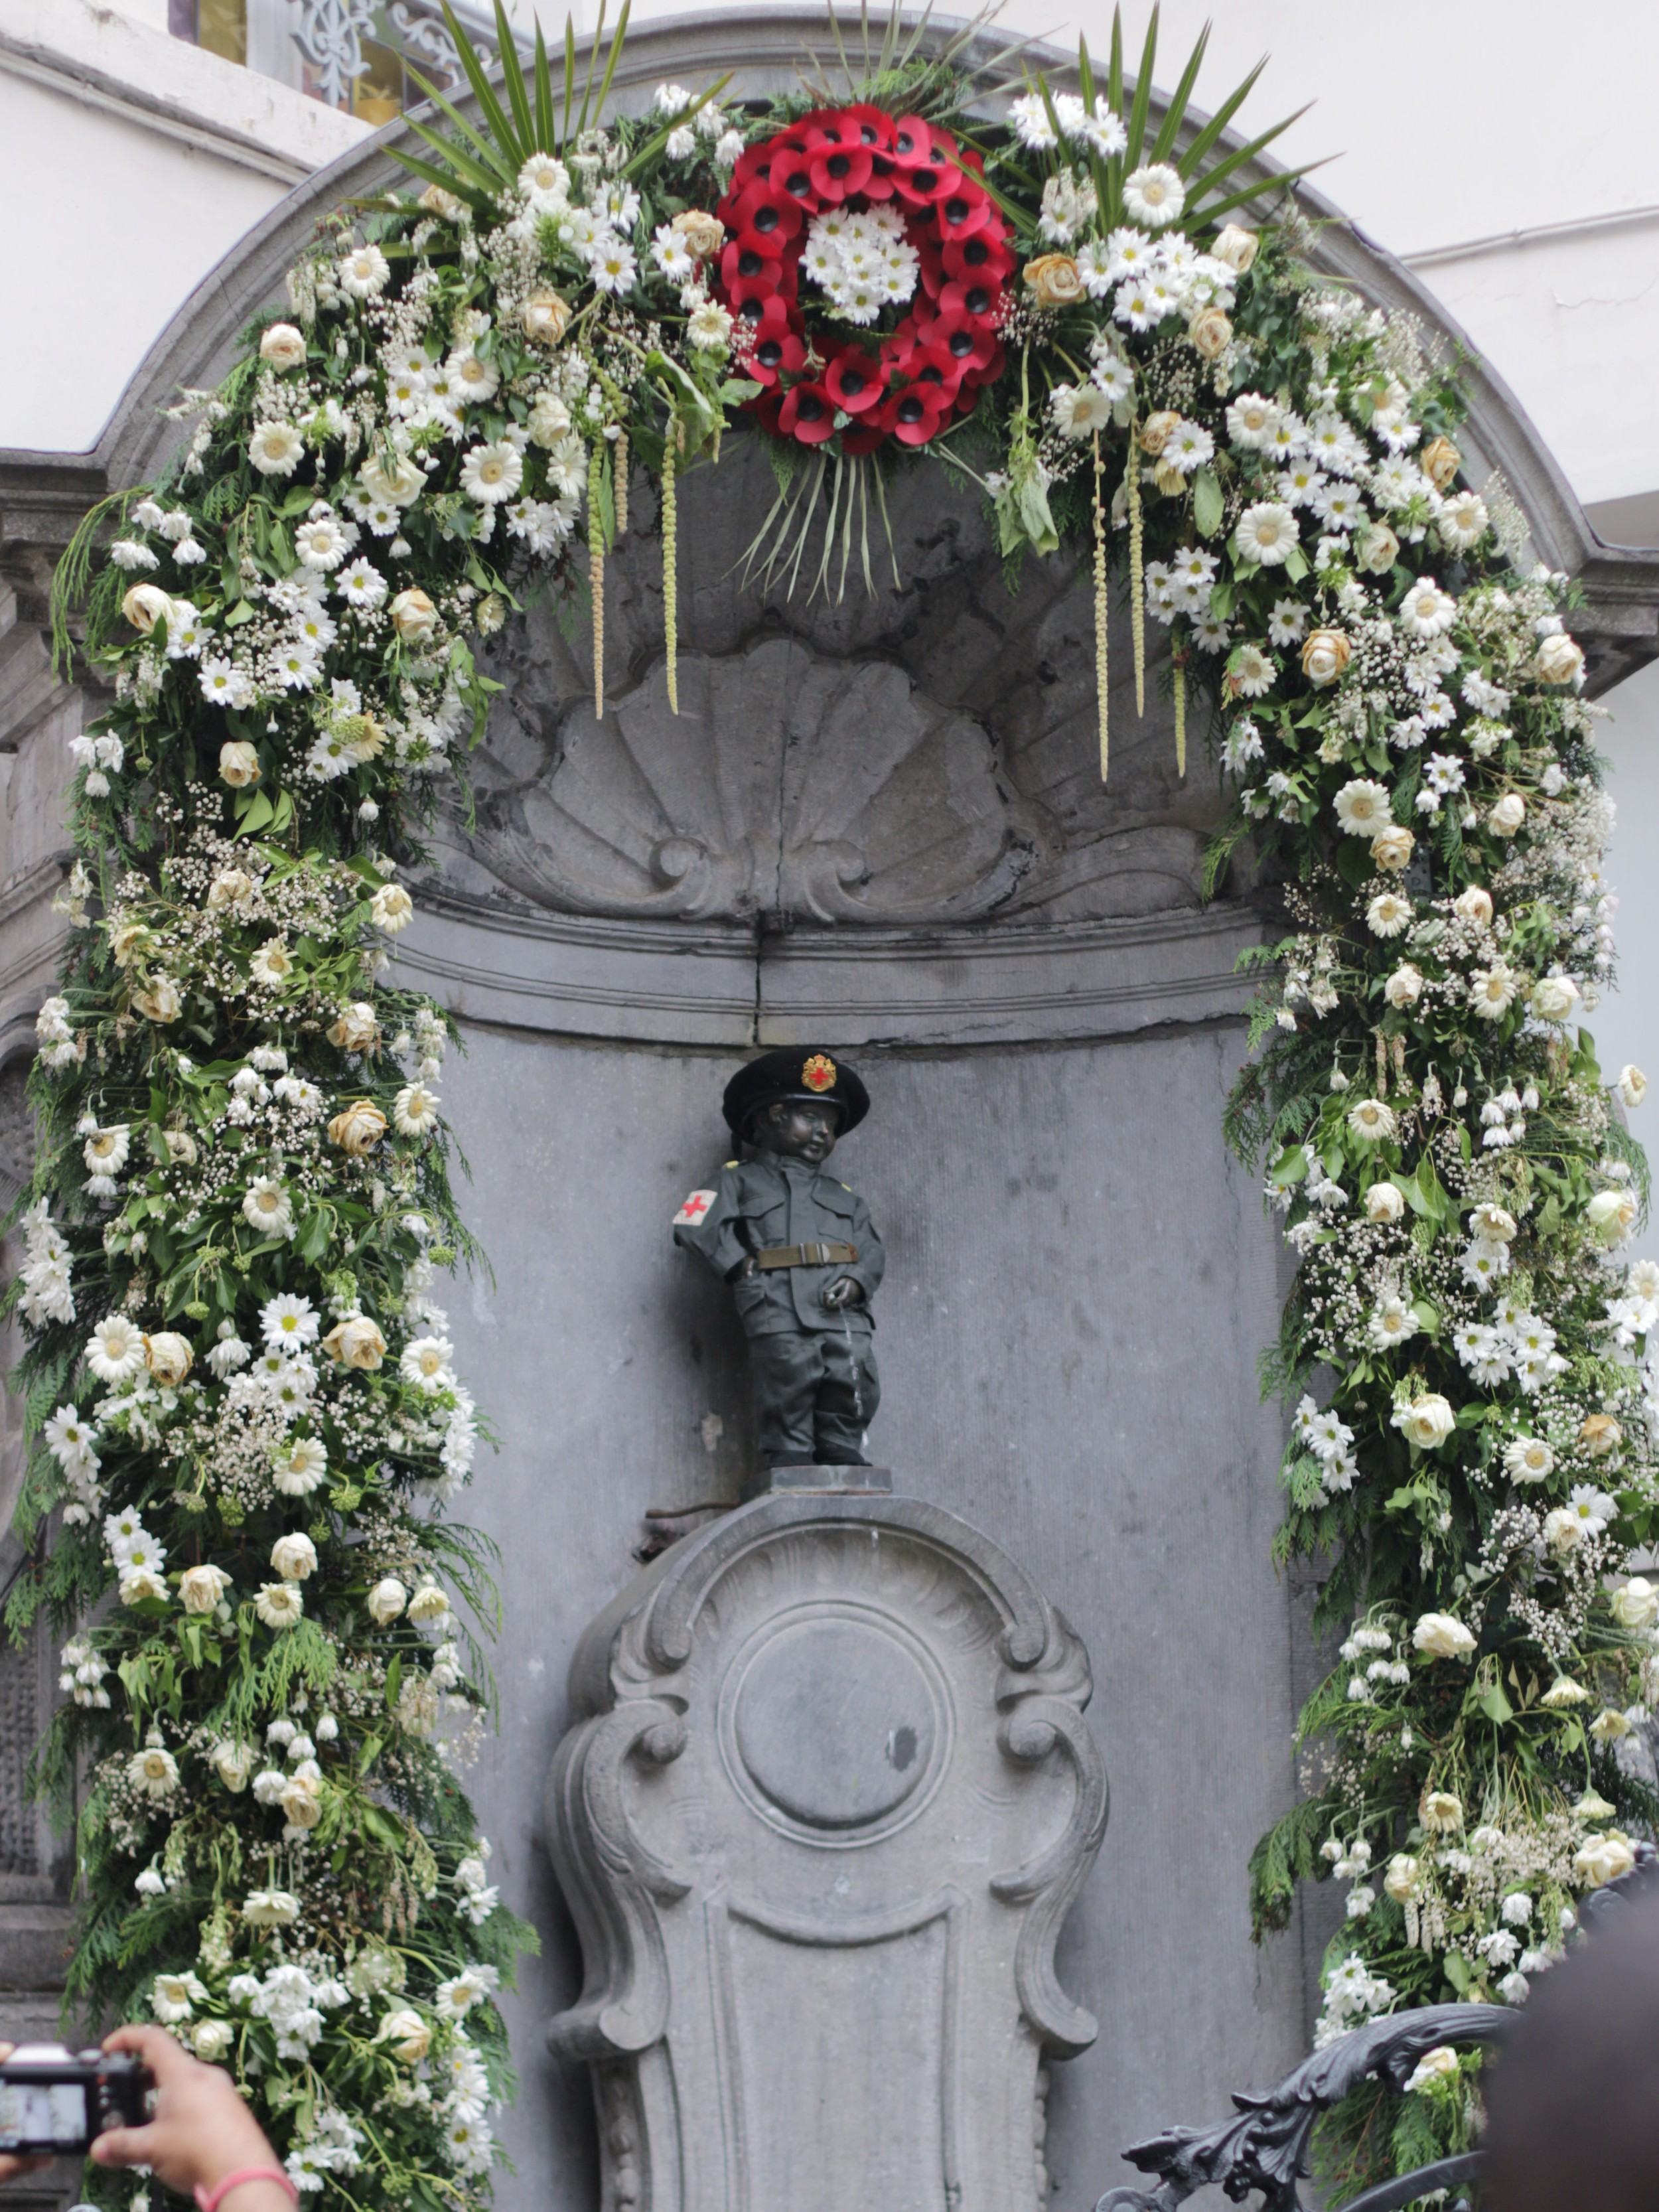 Manneken Pis dressed as a soldier to mark the 100 year anniversary of the start of WW I